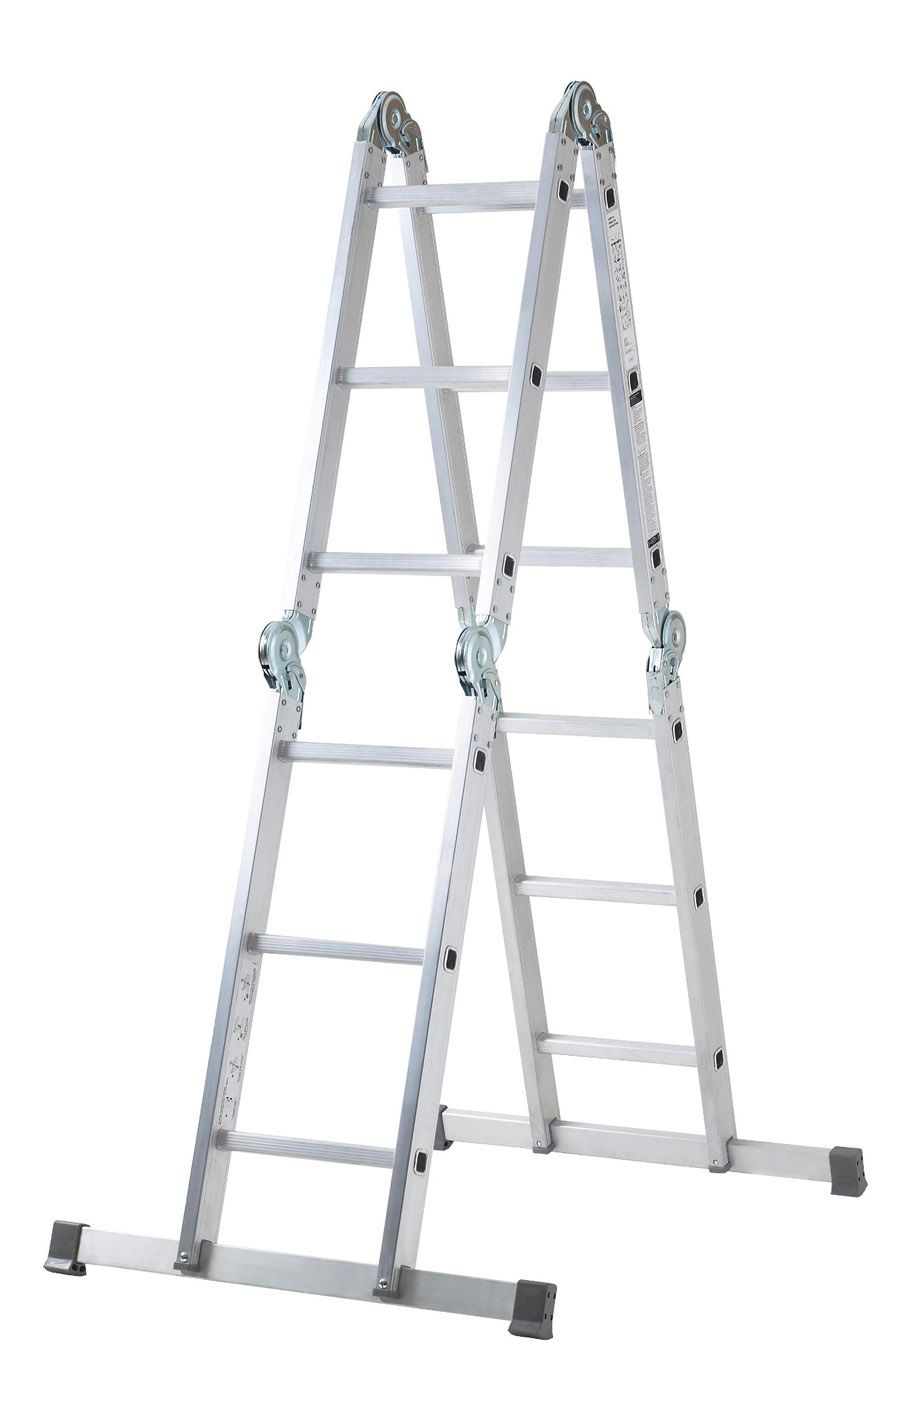 Youngman Multi-Purpose Combination Ladders